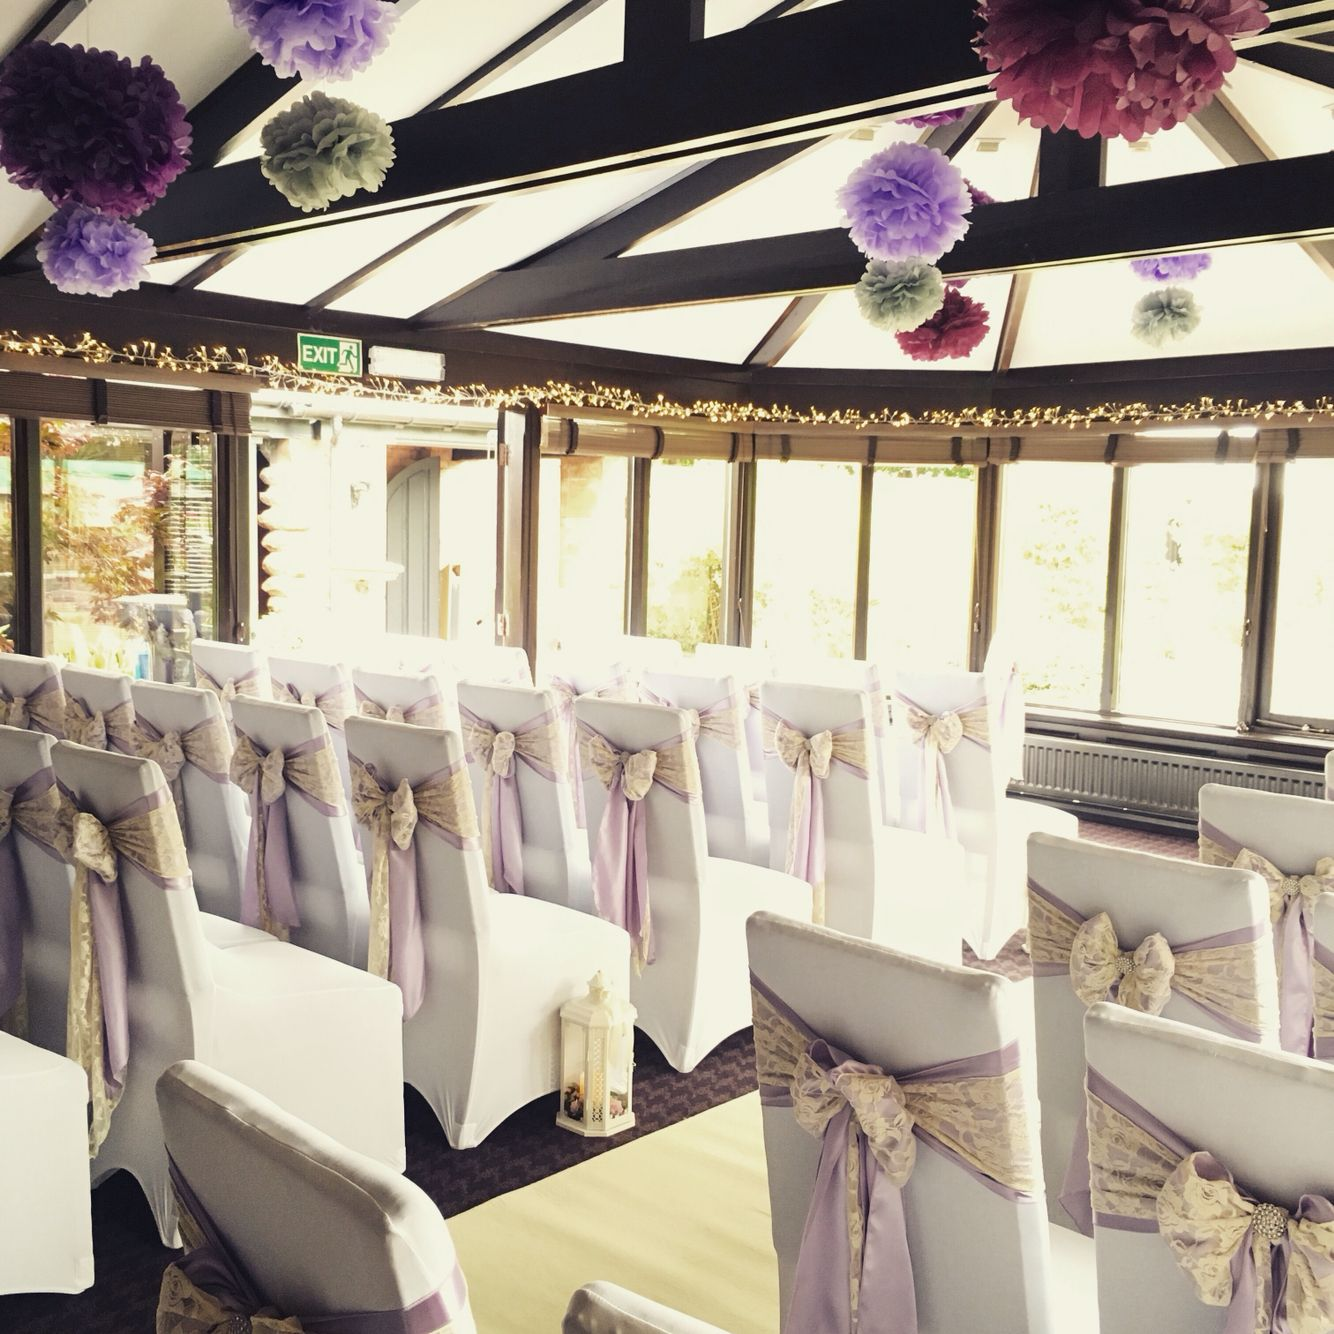 Wedding Chair Covers Lilac Zero G Human Touch Satin Sash With A Lace Overlay